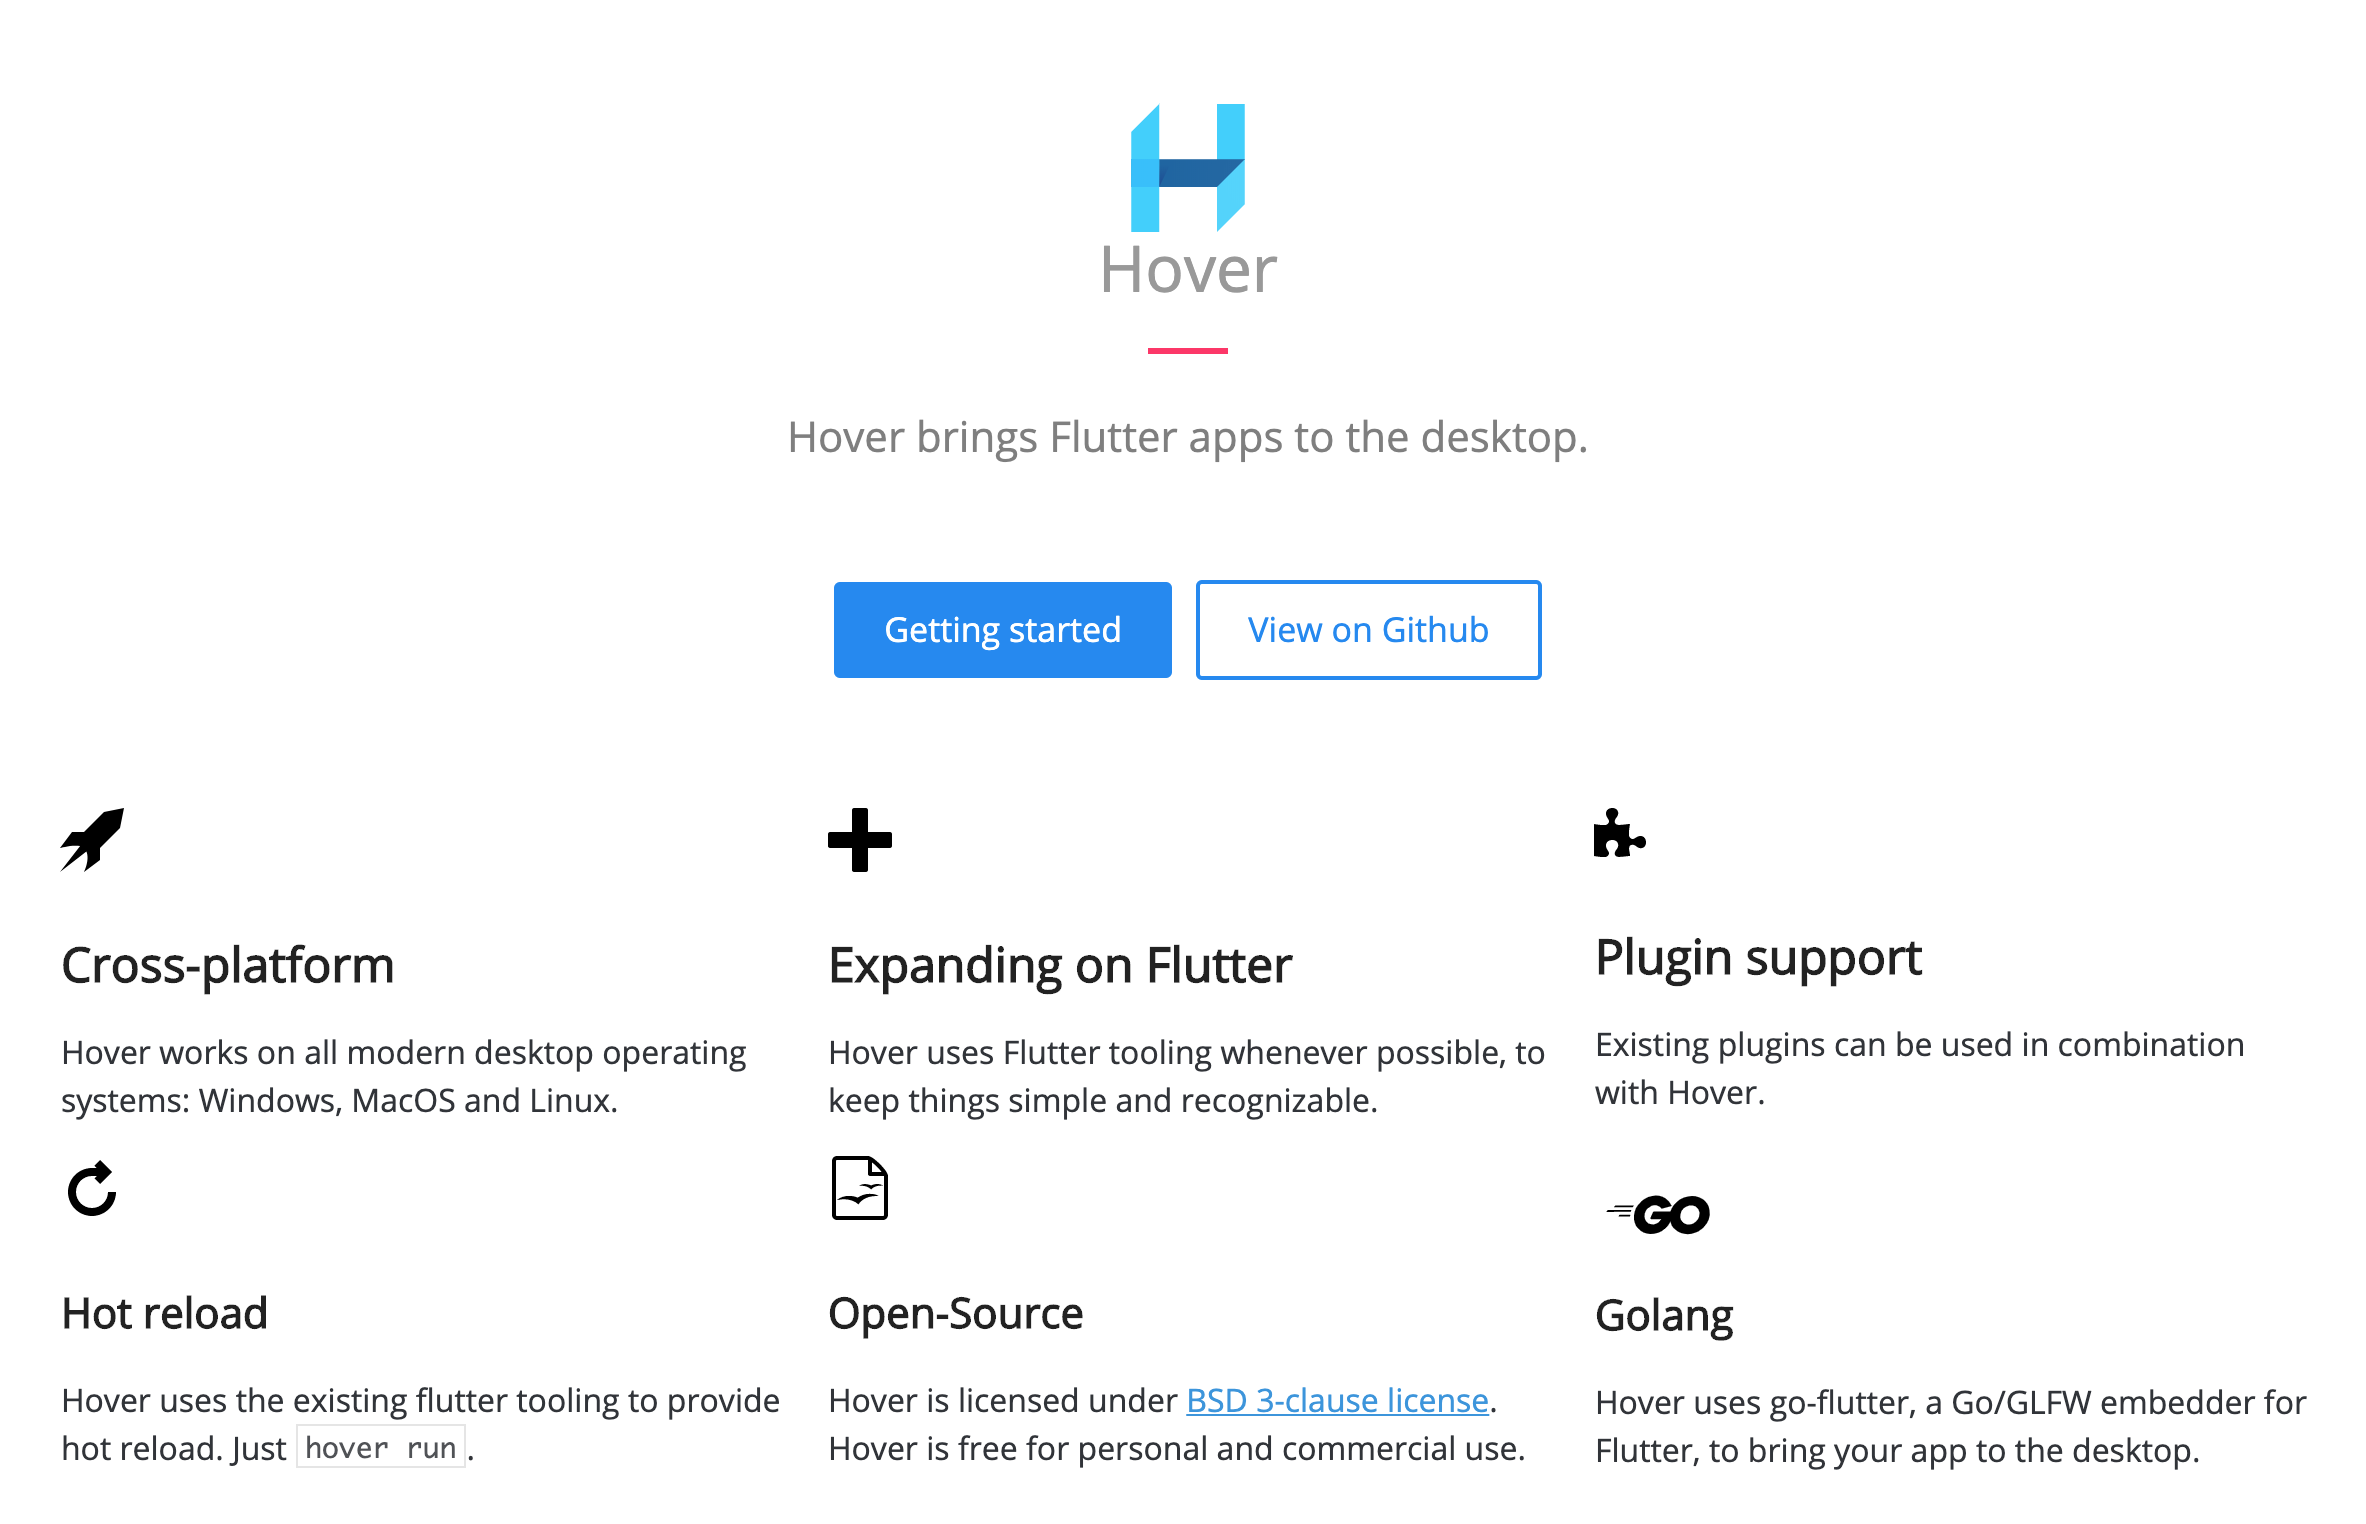 Hover brings Flutter apps to the desktop